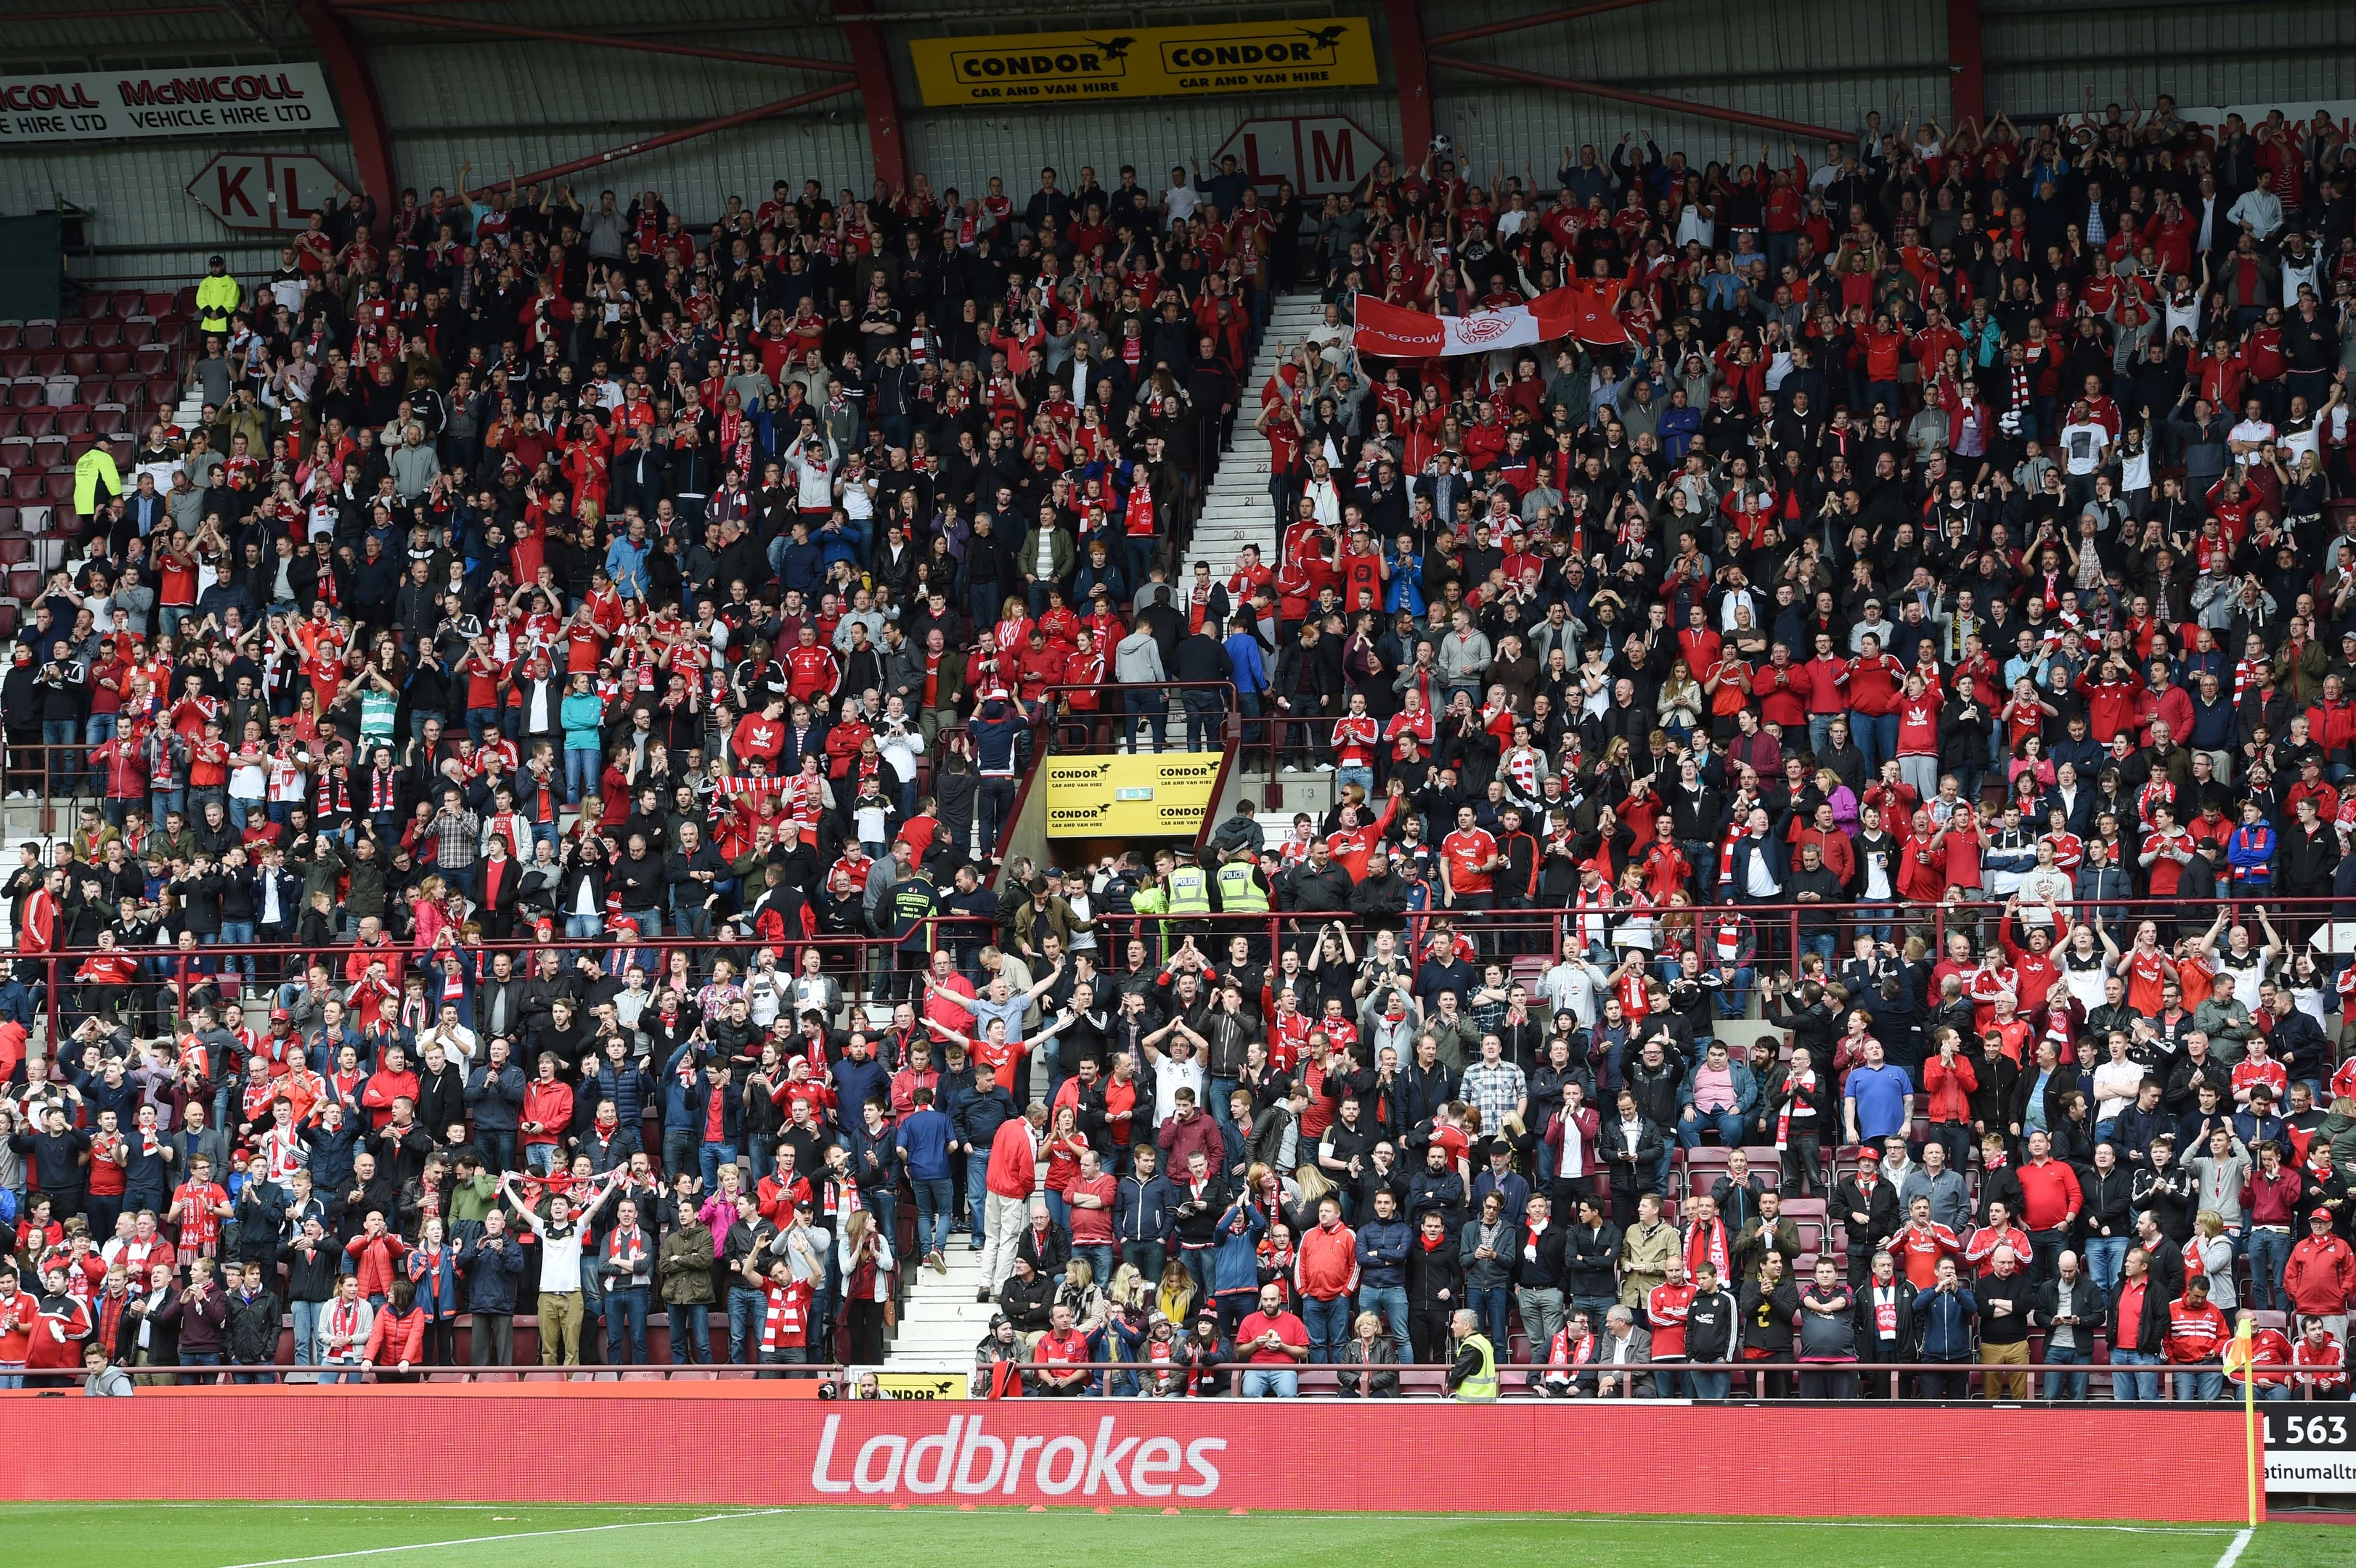 The Aberdeen fans travelled in great number and were sent home happy